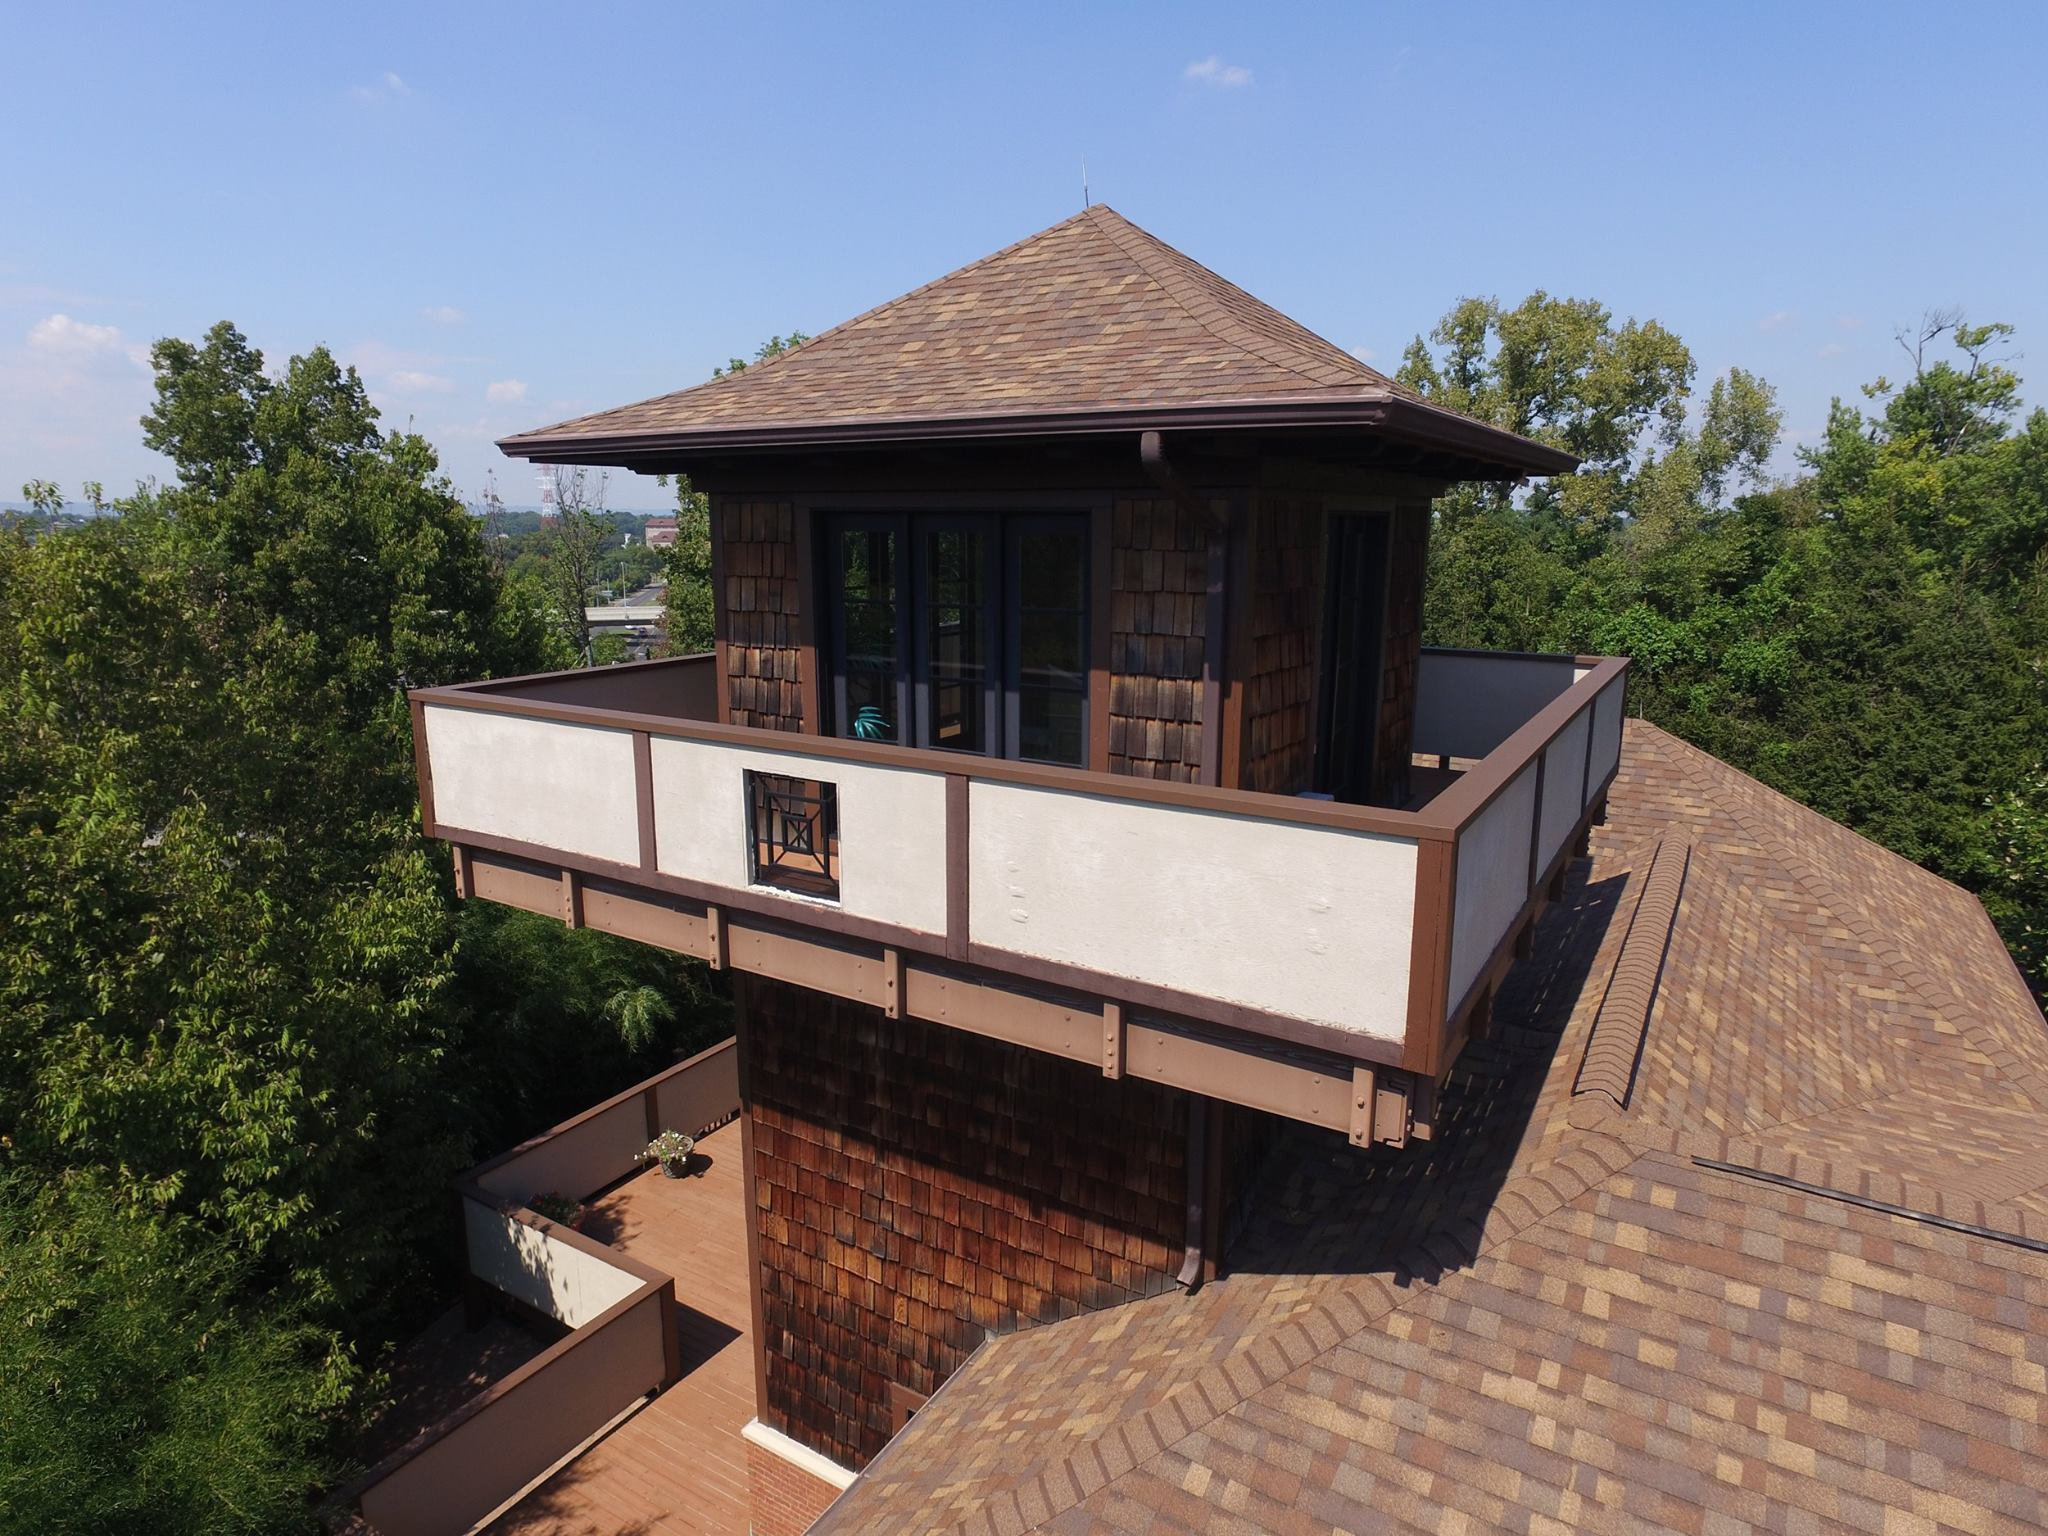 New brown roof showcasing an amazing overwatch completed by Bowling Roofing.